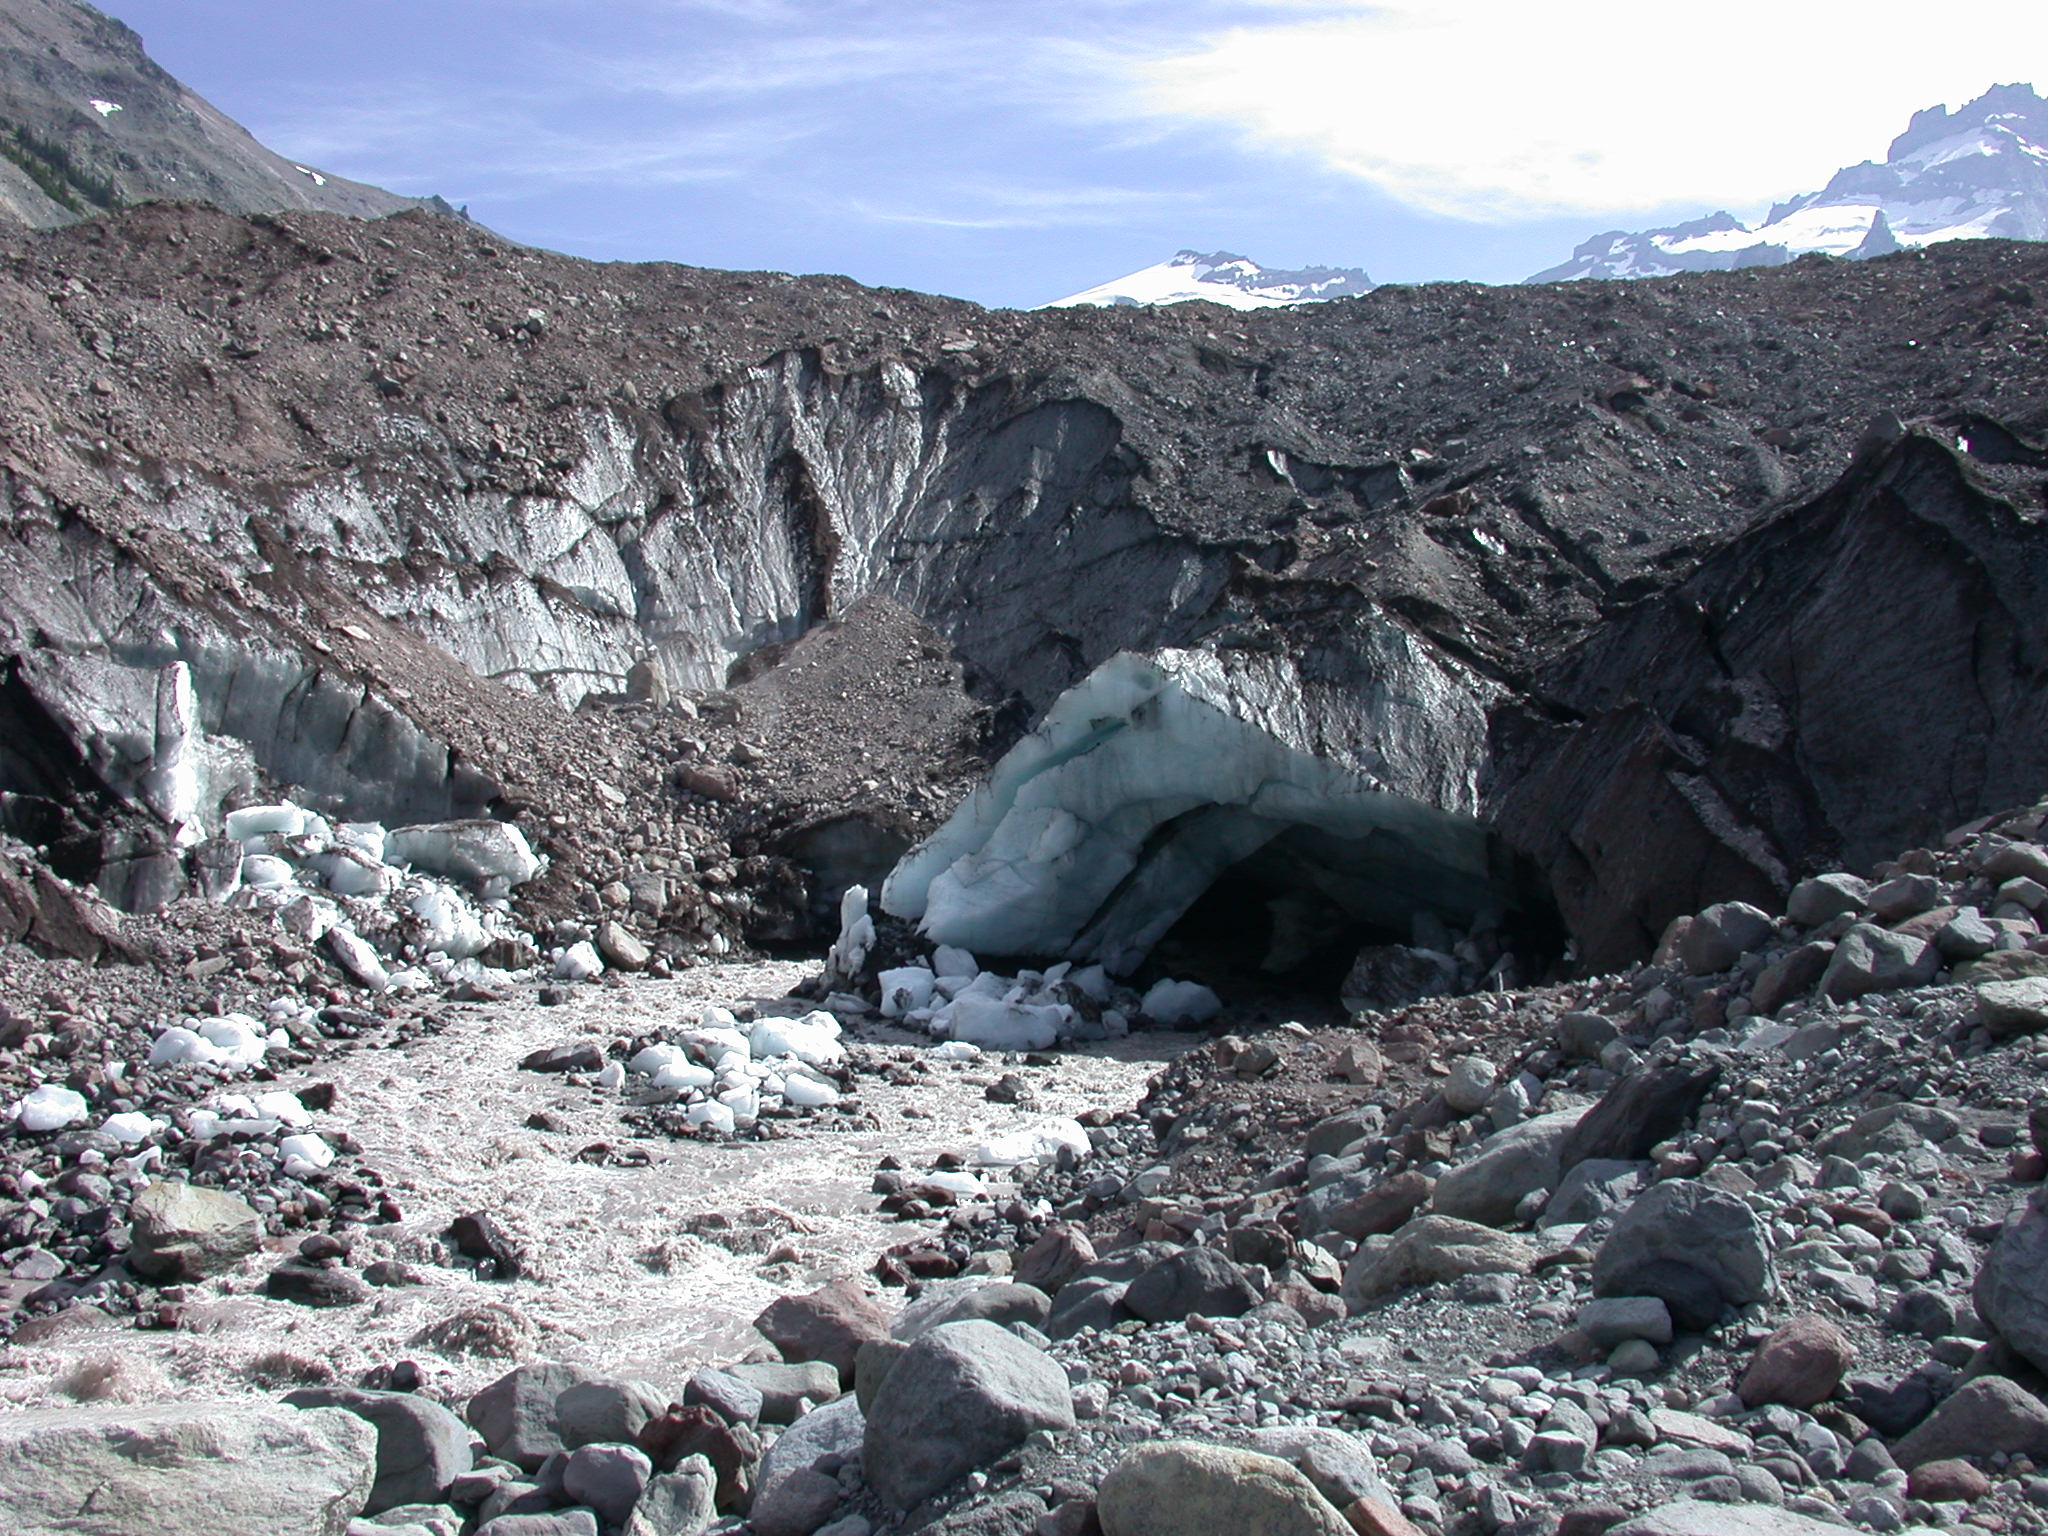 Approaching the Ice Cave at the Base of a Glacier on Mount Rainier